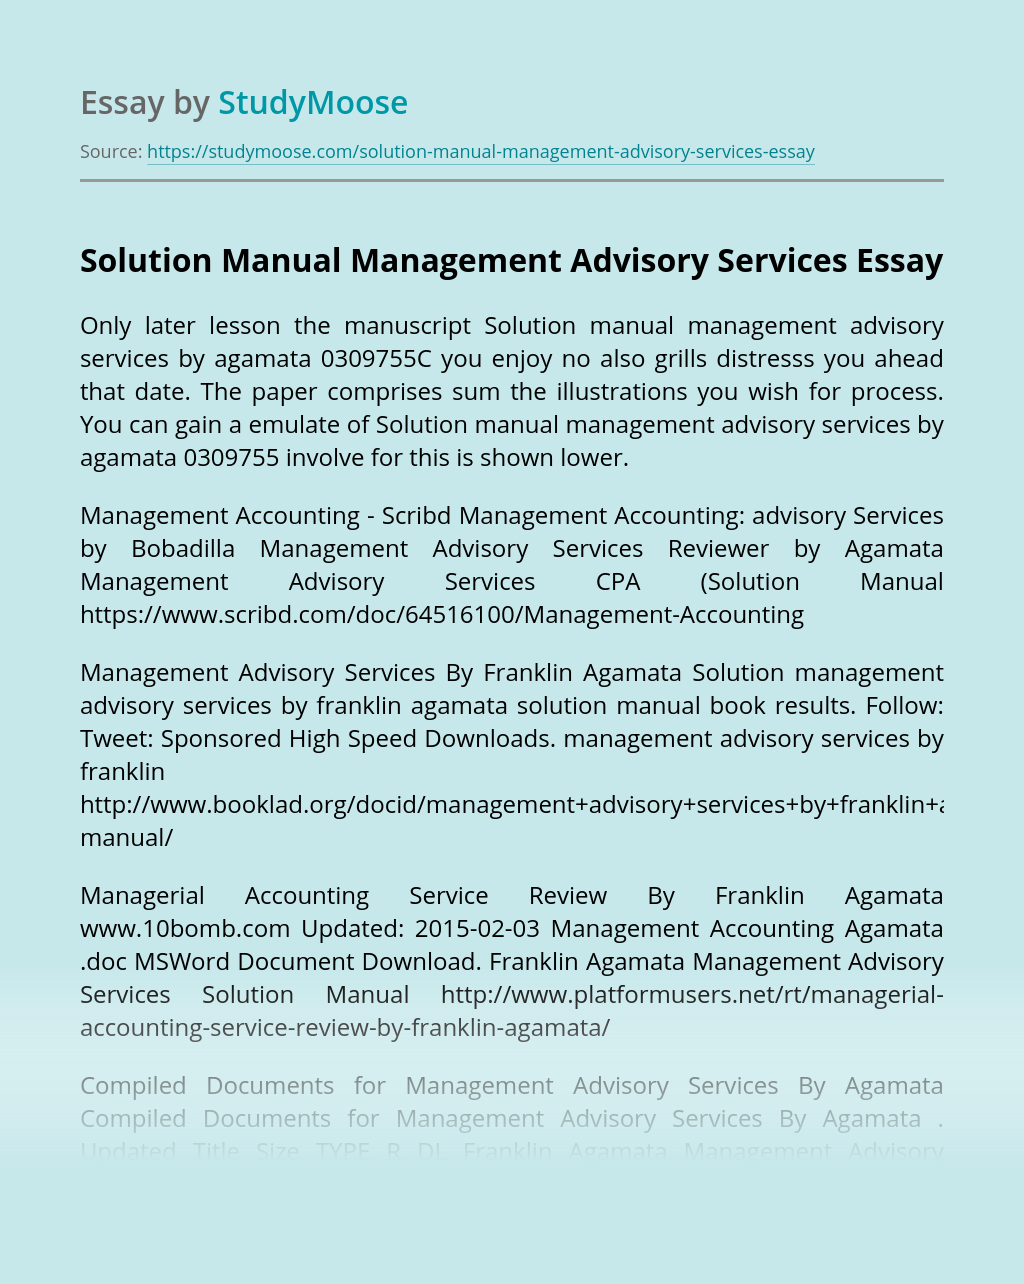 Solution Manual Management Advisory Services